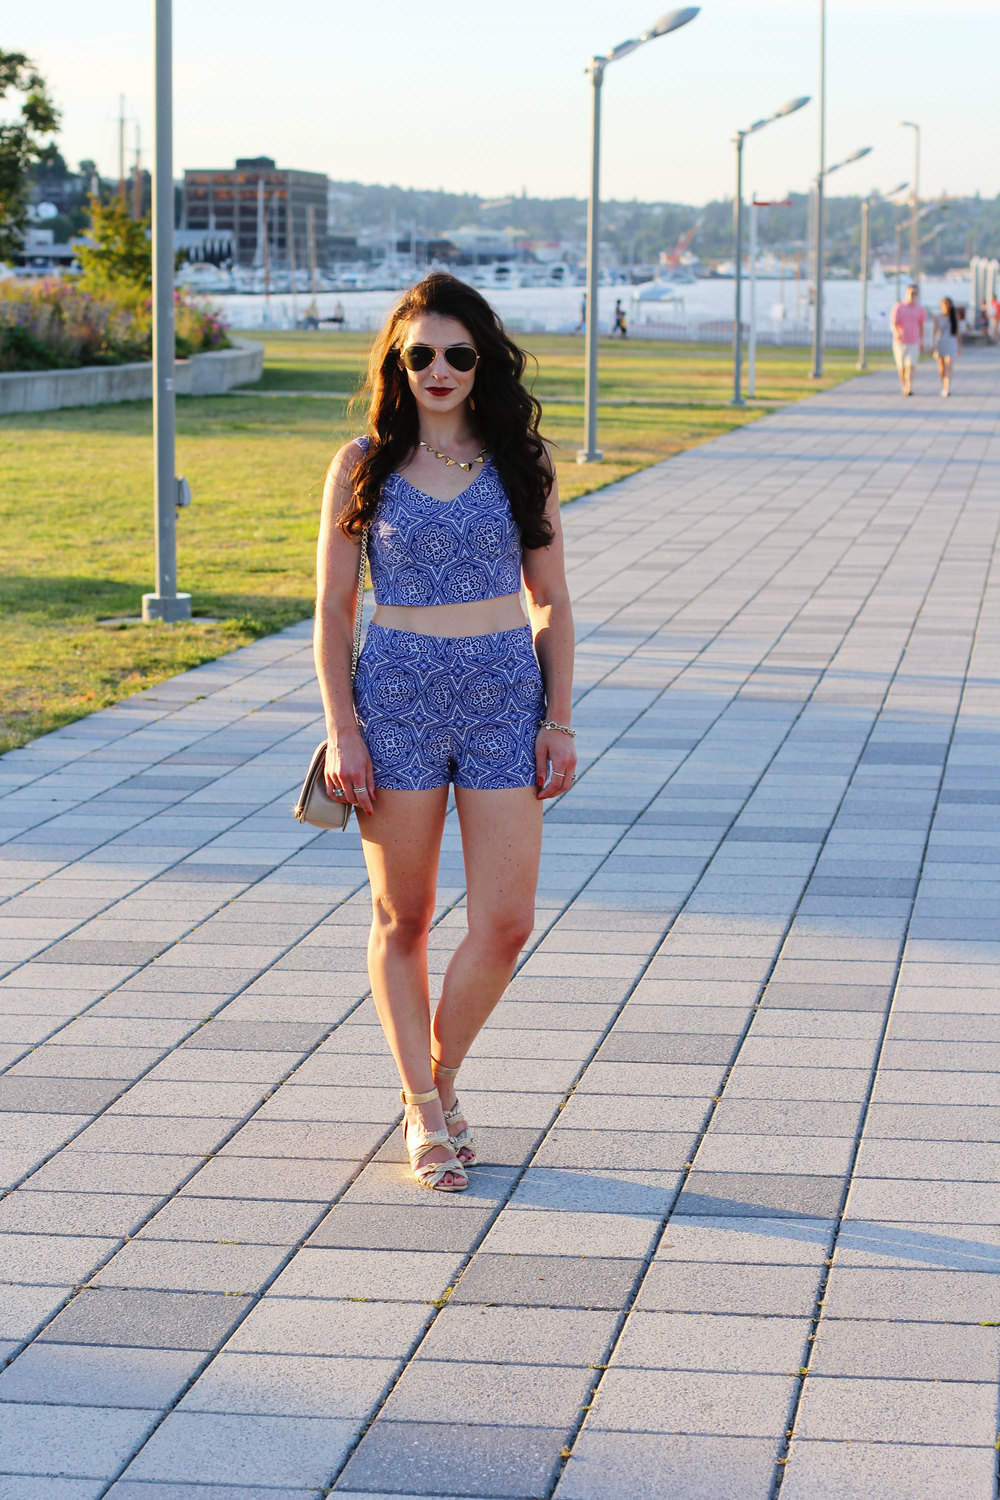 Fashion Blogger, Top and Shorts Set, Coordinates, Matching Top and Shorts, Loeffler Randall Gladiator Sandals, David Yurman Bracelet, Rebecca Minkoff Love Crossbody, Ray-Ban Aviators